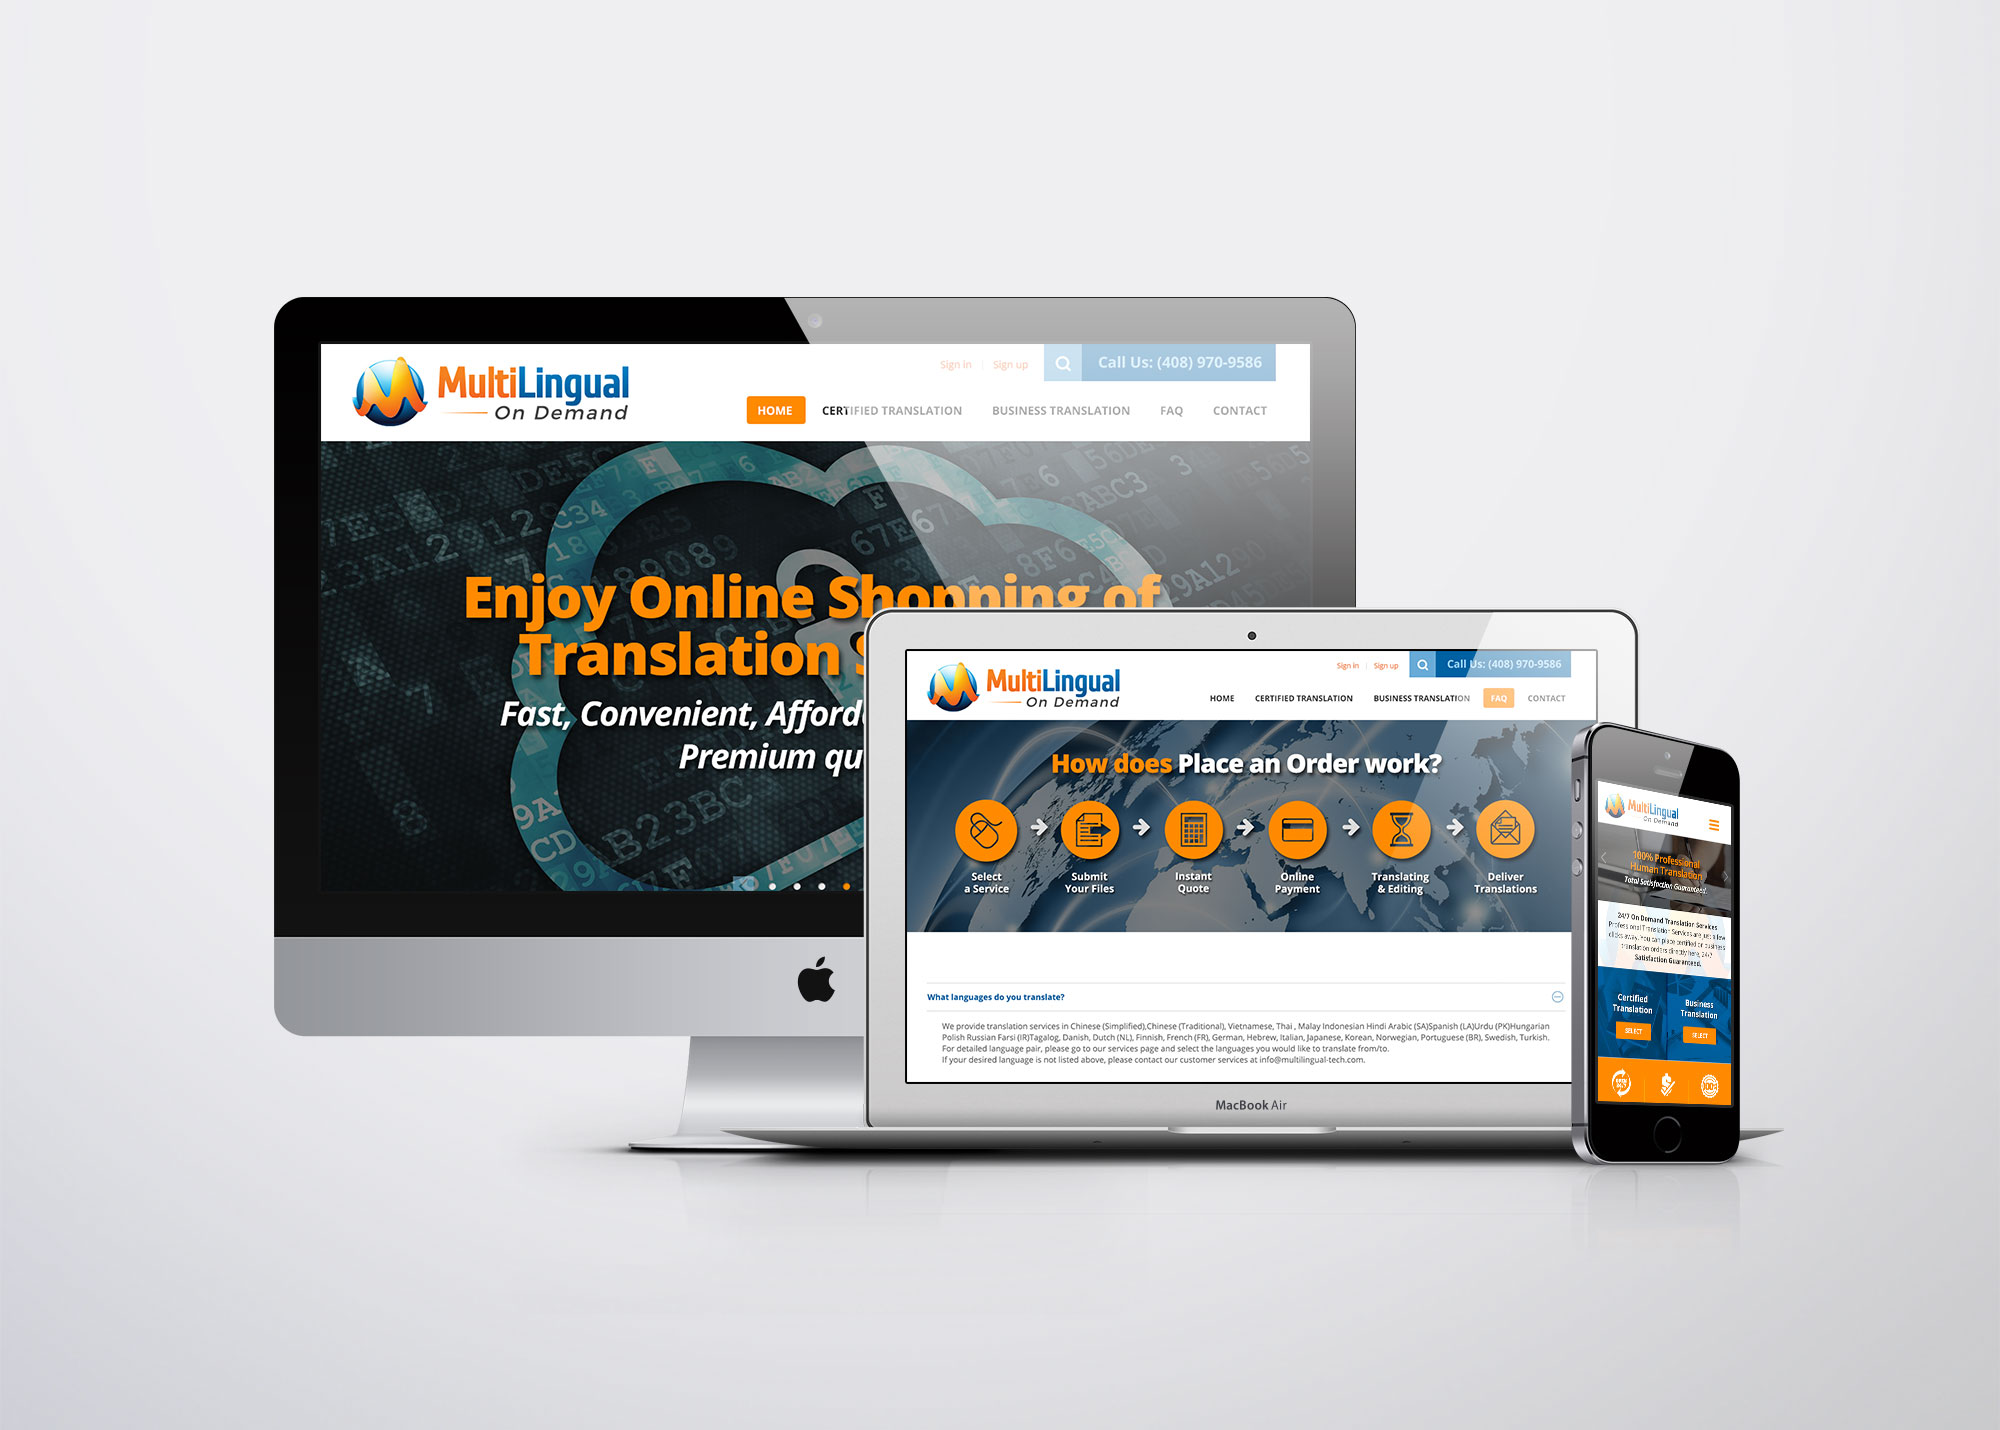 Multilingual-Ondemand-Web-Design